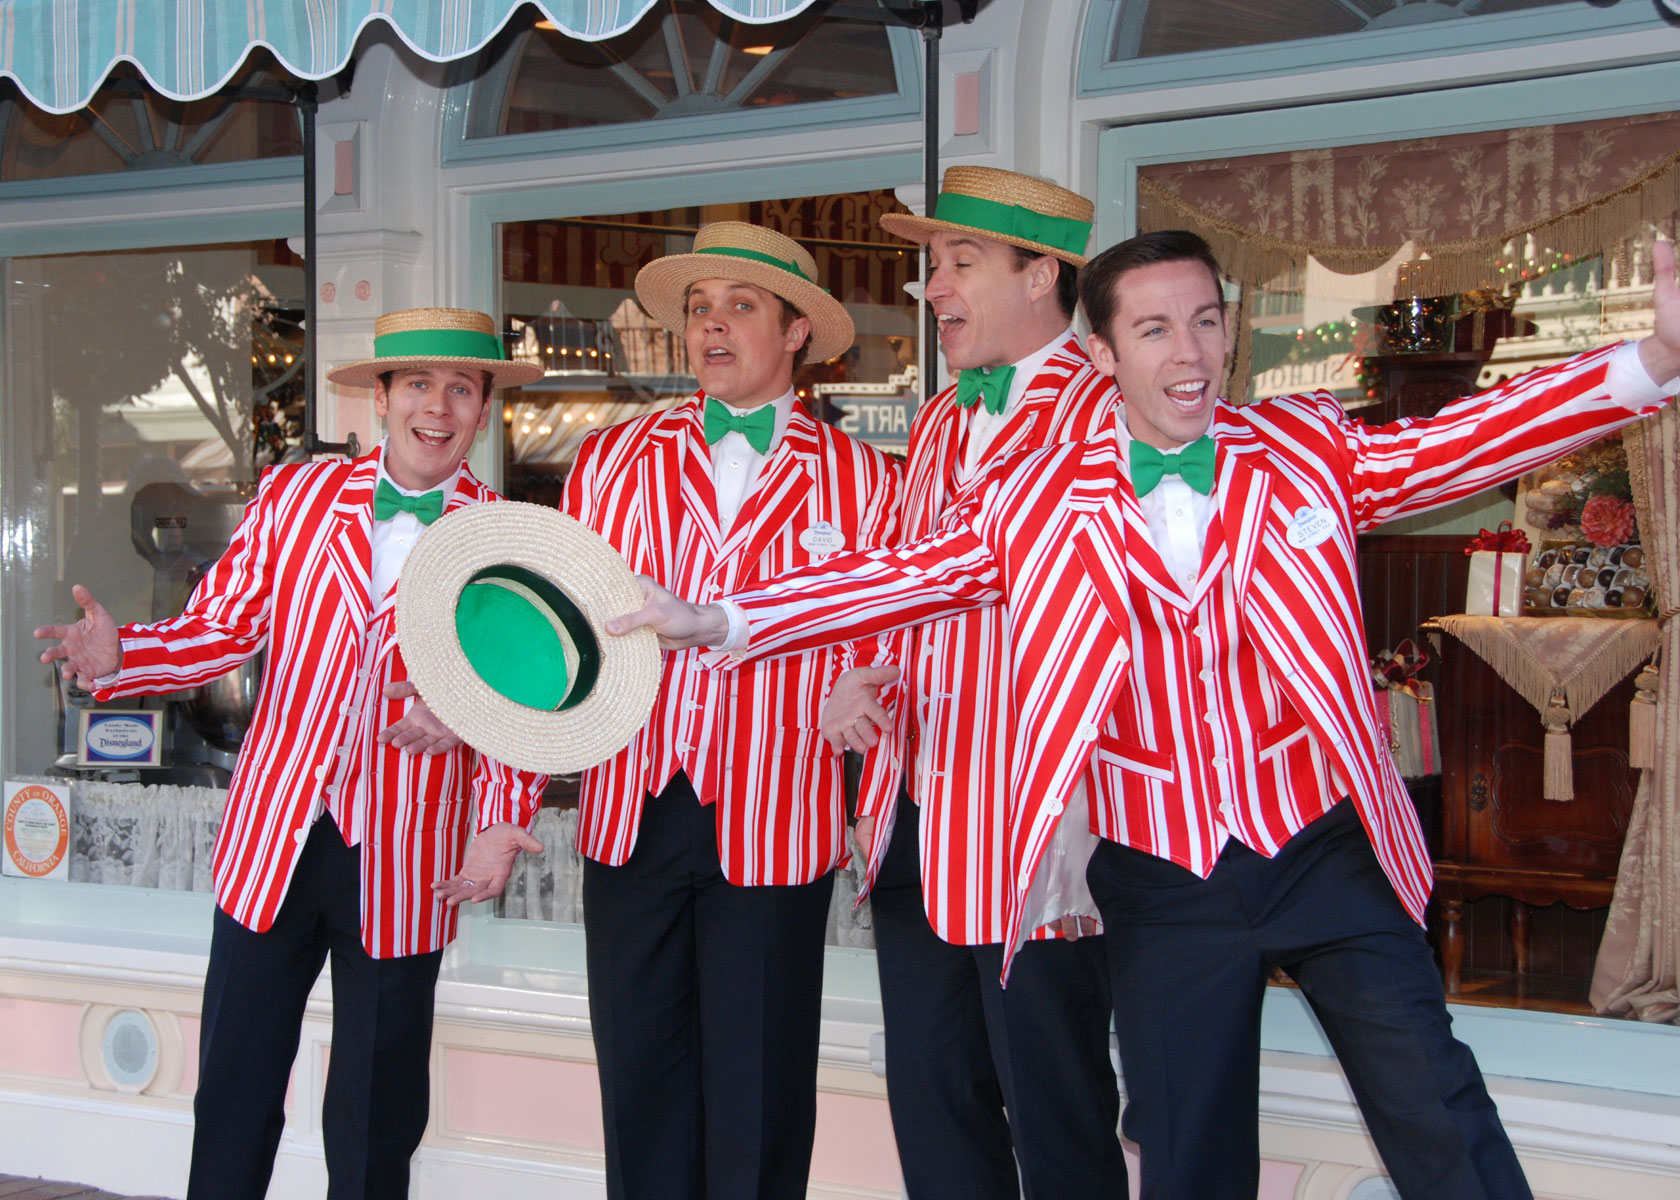 The barbershop quartet performs holiday songs on Main Street.